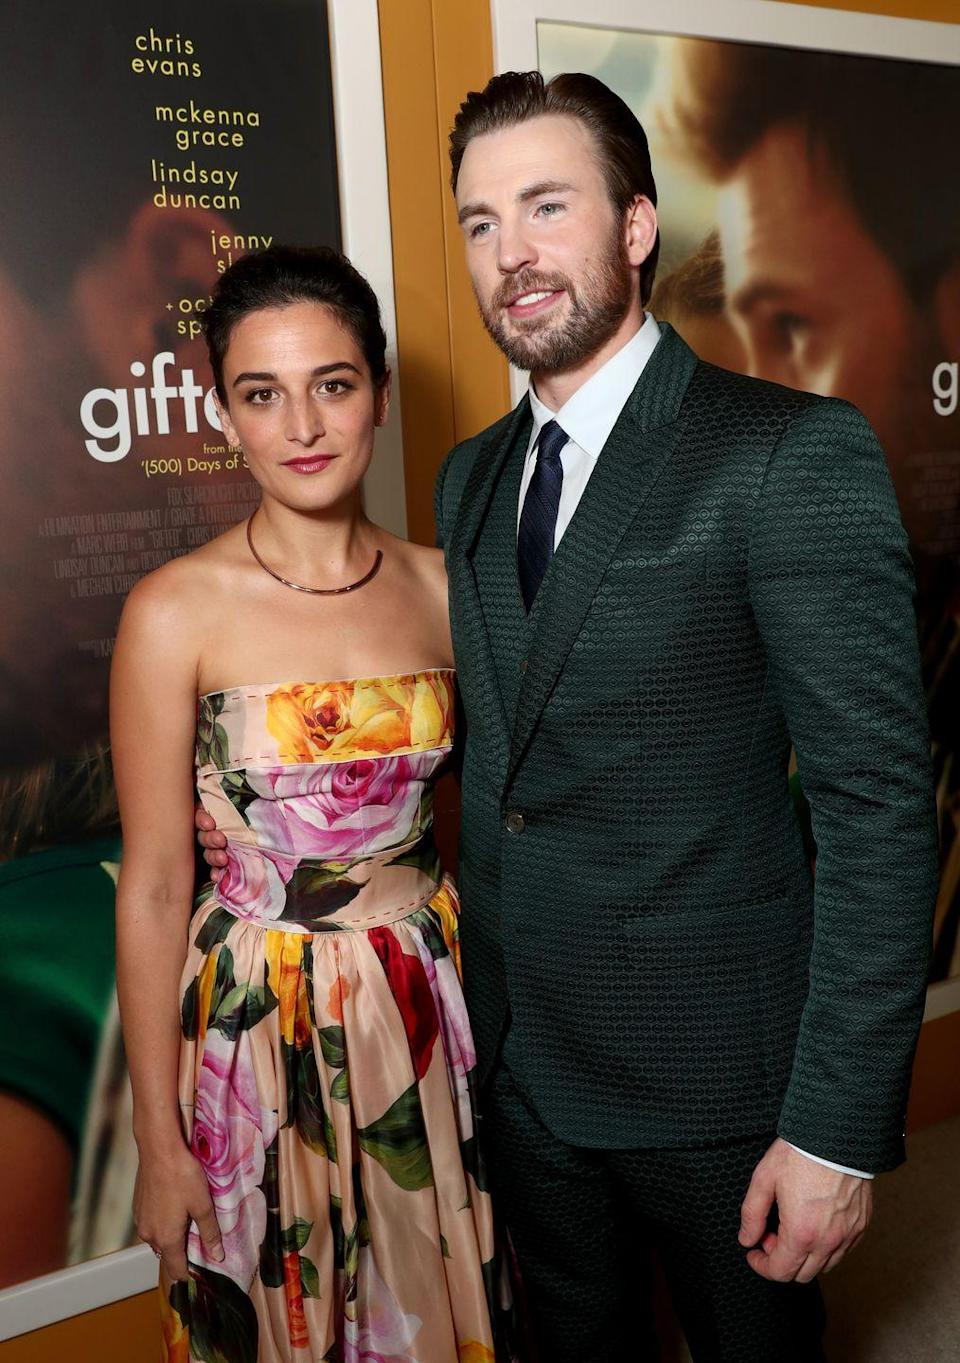 "<p>Slate and Evans met on the set of <em>Gifted</em> and just as their characters fell in love on screen, a romance started to form in real life. Sadly, the pair ended things before the movie officially premiere but continued to work together to promote the movie. <a href=""https://www.elle.com/culture/a19562480/jenny-slate-and-chris-evans-broke-up-again/"" rel=""nofollow noopener"" target=""_blank"" data-ylk=""slk:Even after their split"" class=""link rapid-noclick-resp"">Even after their split</a>, Evans <span class=""redactor-unlink"">told</span> <em>People </em>that Slate was his ""favorite human.""</p>"